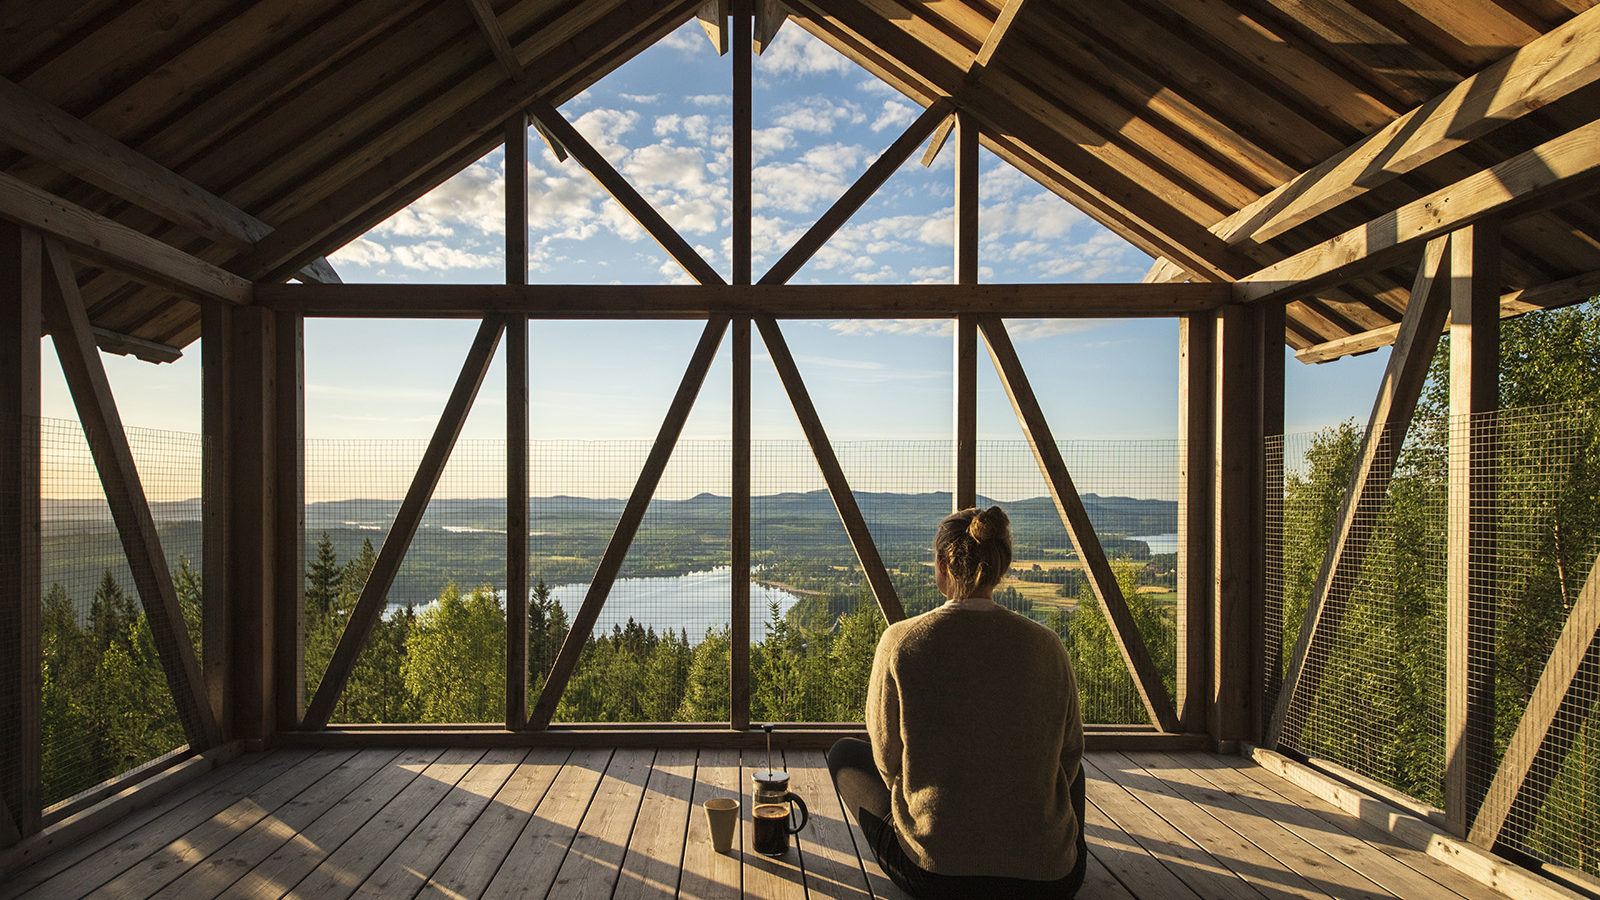 Image of woman sitting in a wooden building with big windows overlooking forests